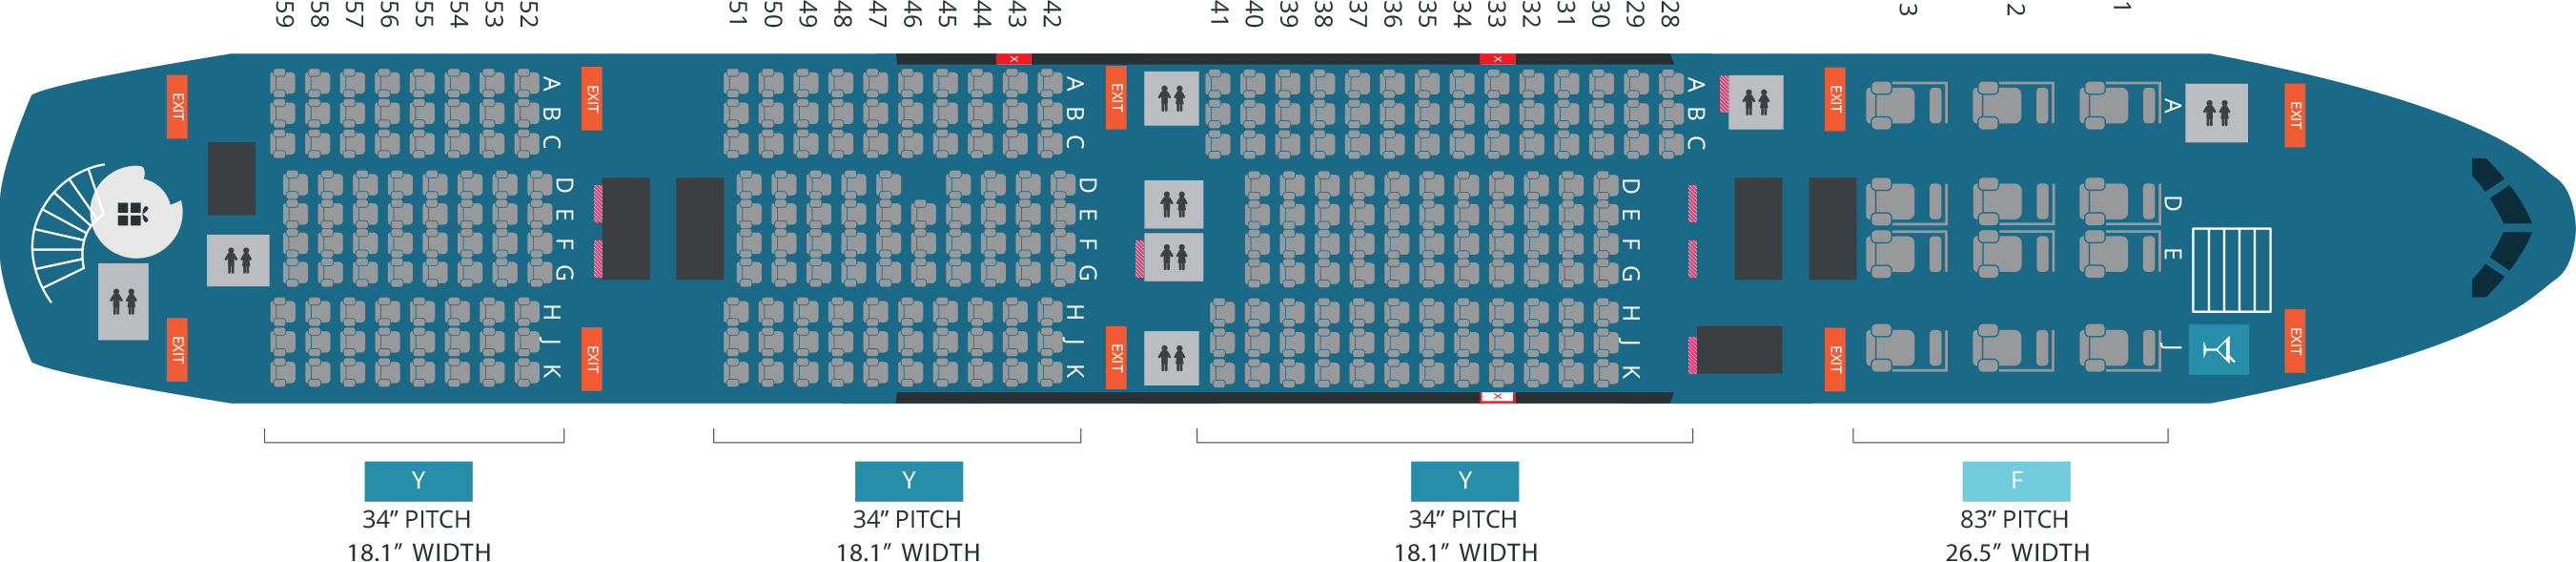 Delta Airbus A380 800 Seating Chart - Frameimage.org